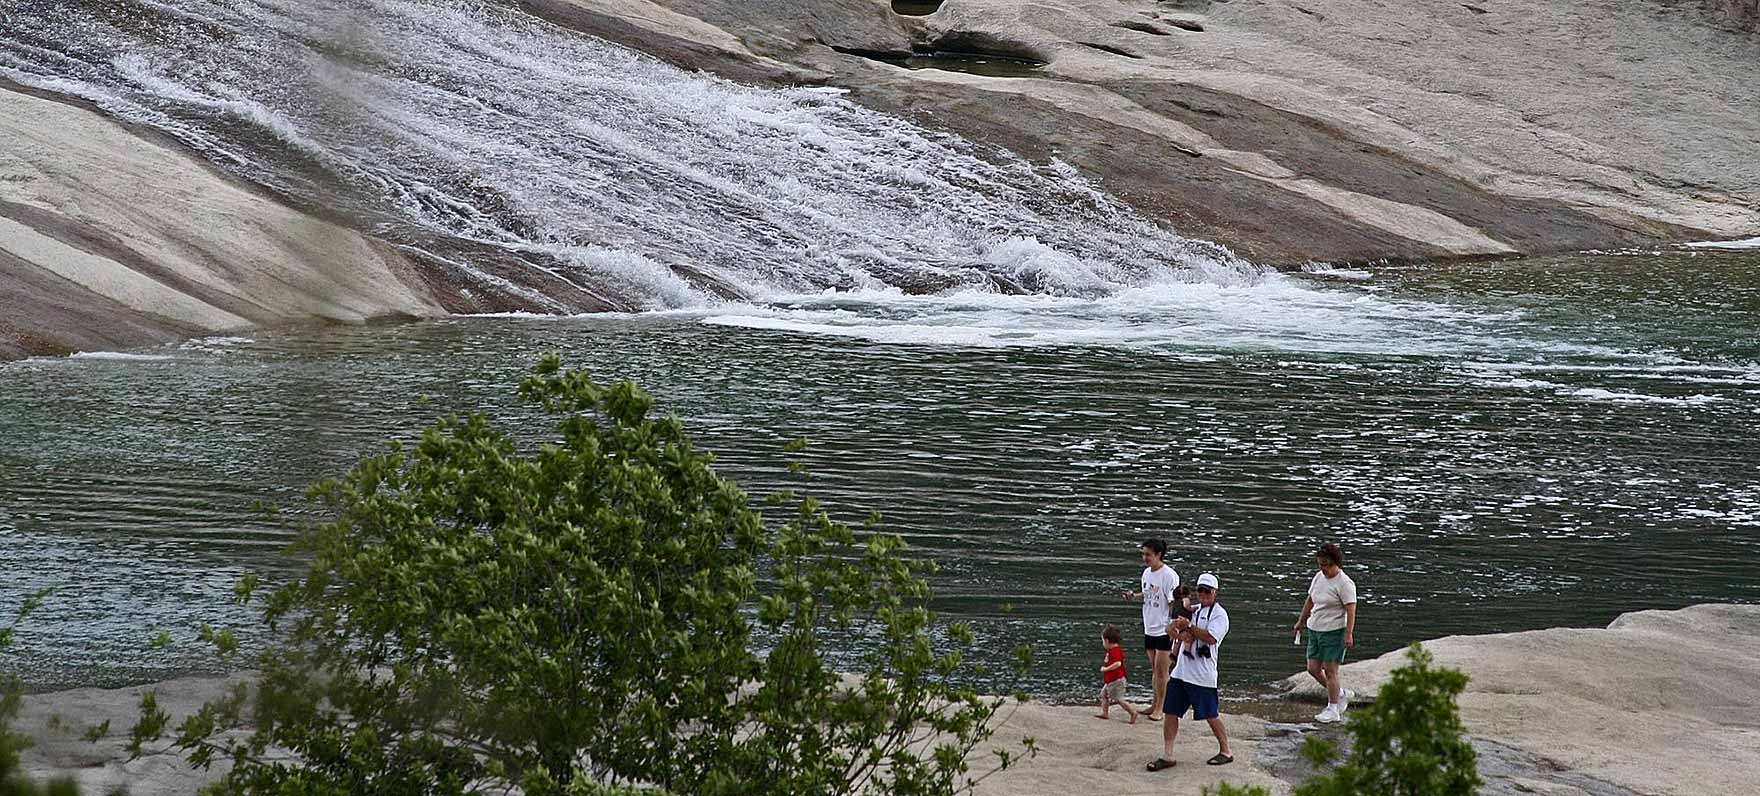 Follow the Pedernales River as it cascades over steps of layered limestone to create the picturesque Pedernales Falls. This drop in elevation will definitely be the high point of your visit.